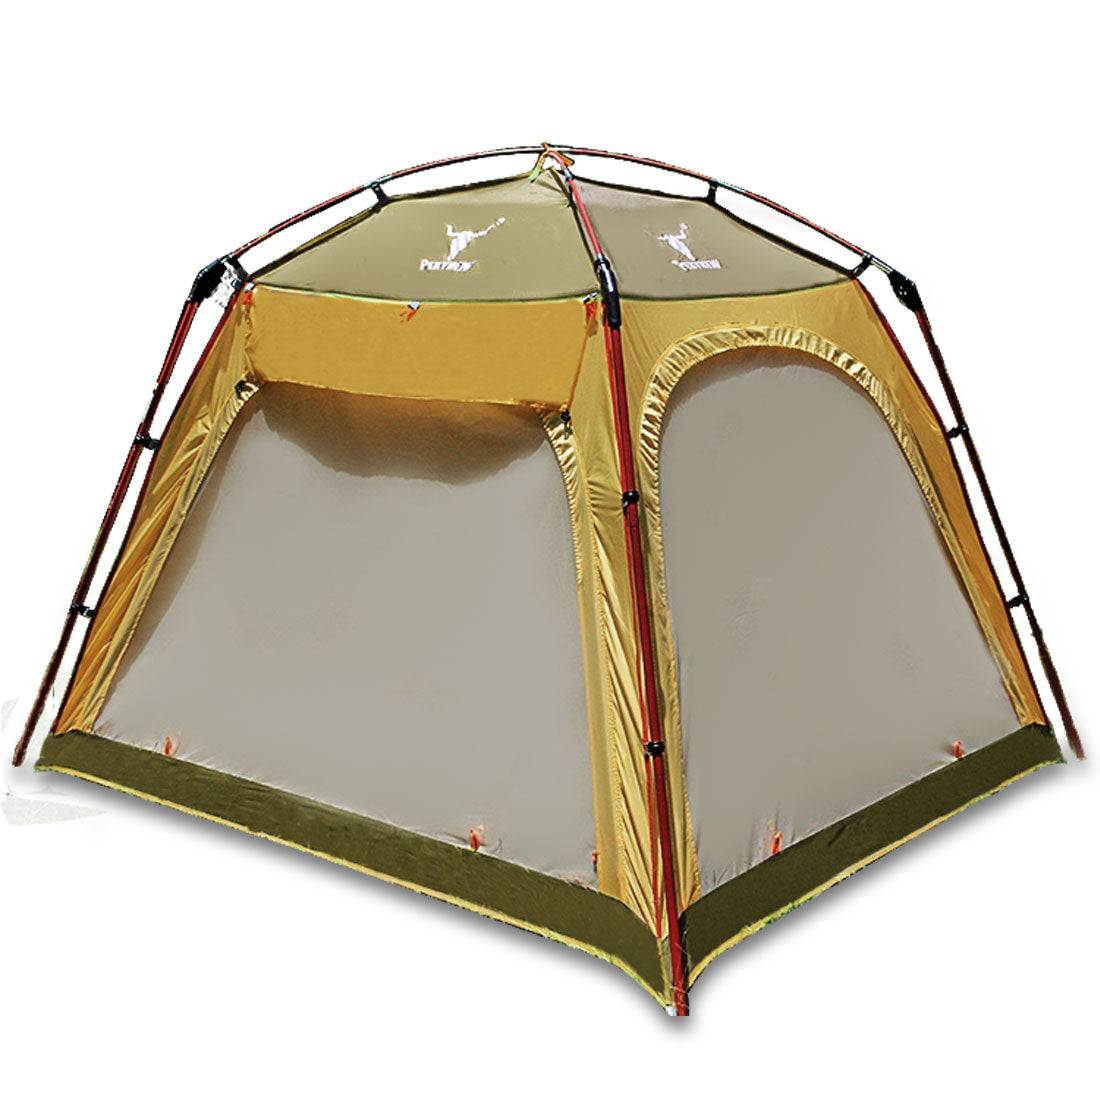 4 - 6 Person Man Family Camping Dome Tent Canvas Swag Hiking Beach Shade Shelter Green